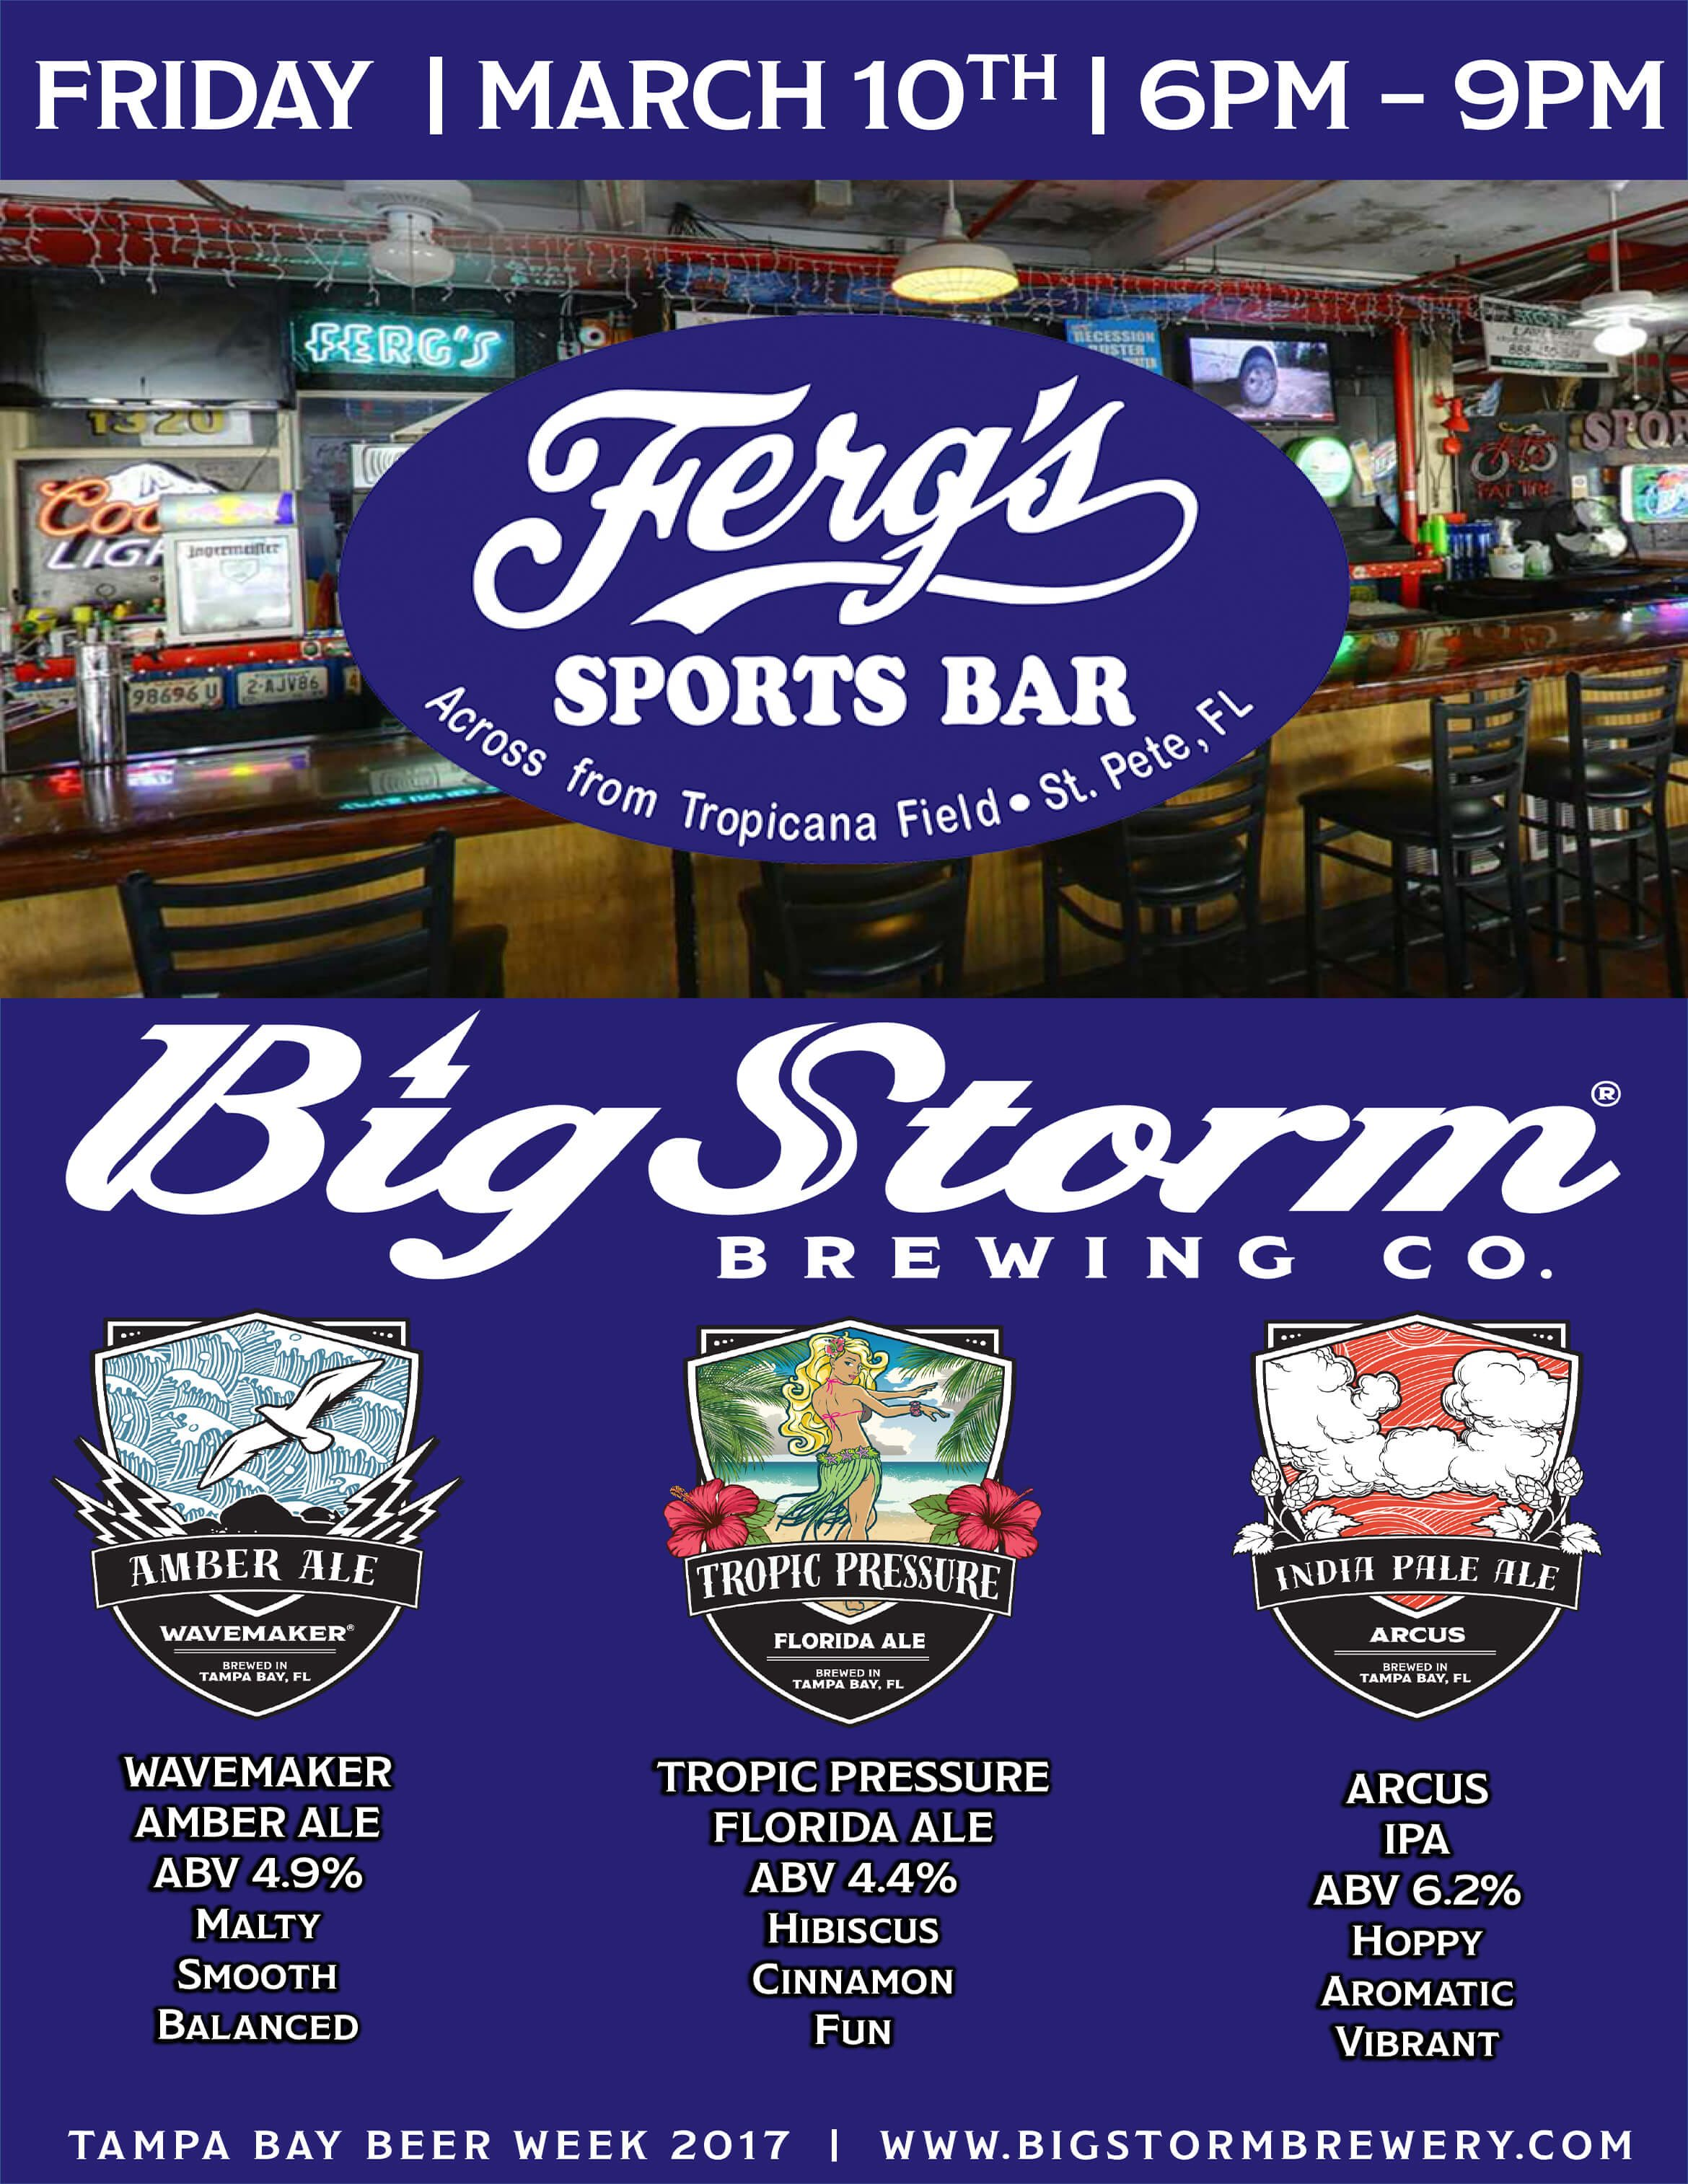 Big Storm Brewing Co. at Ferg's